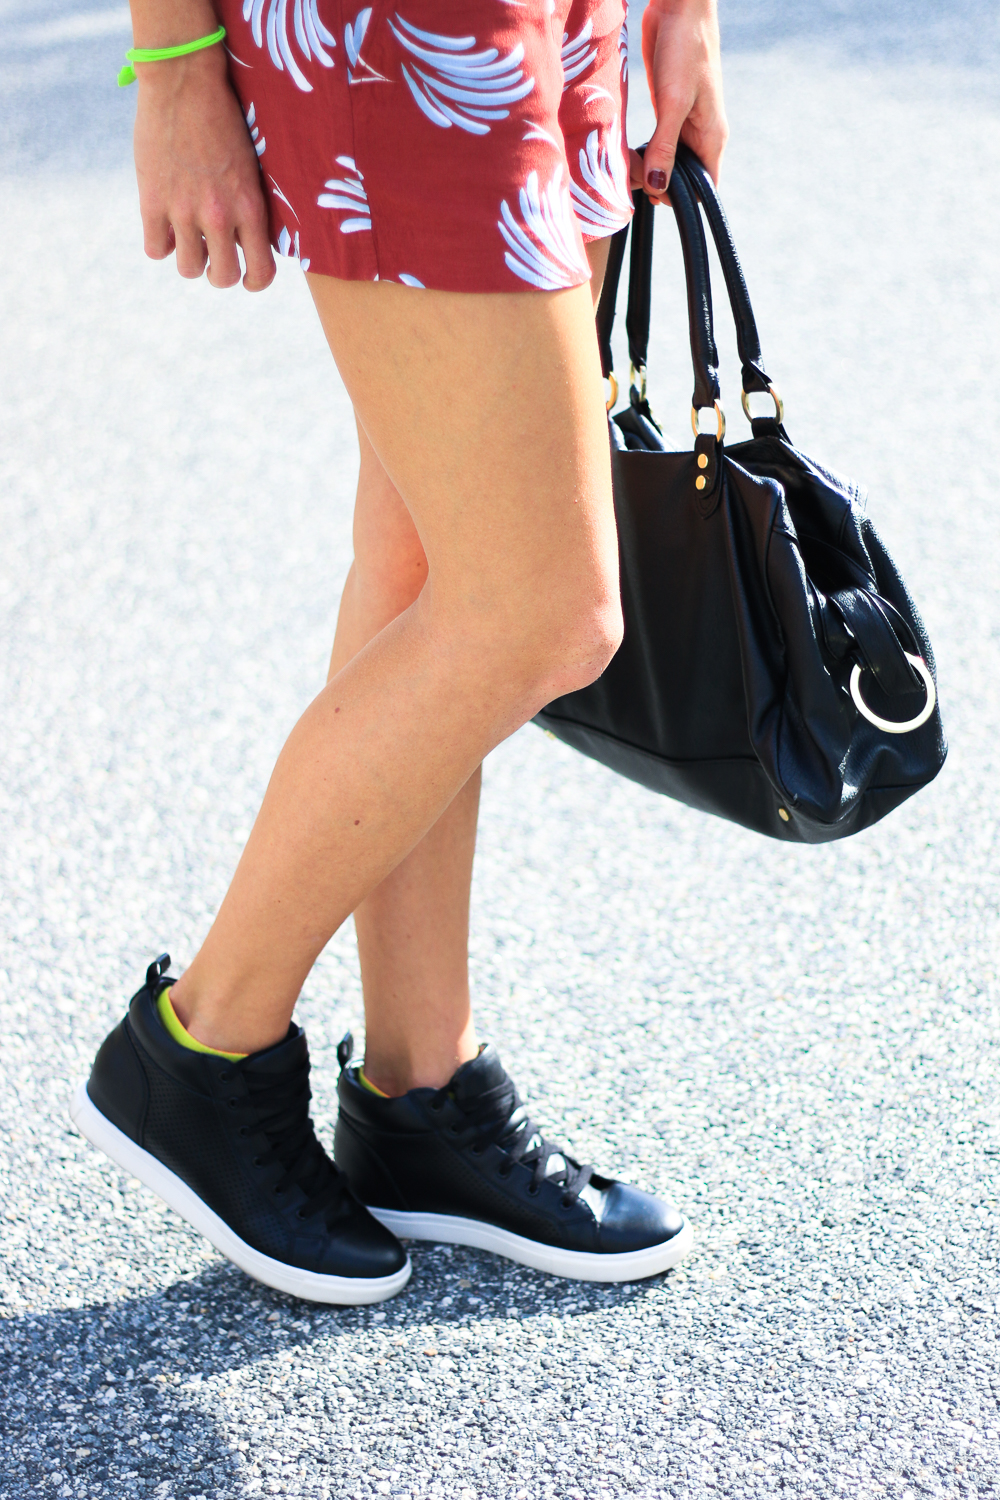 target_pleather_shoes-1